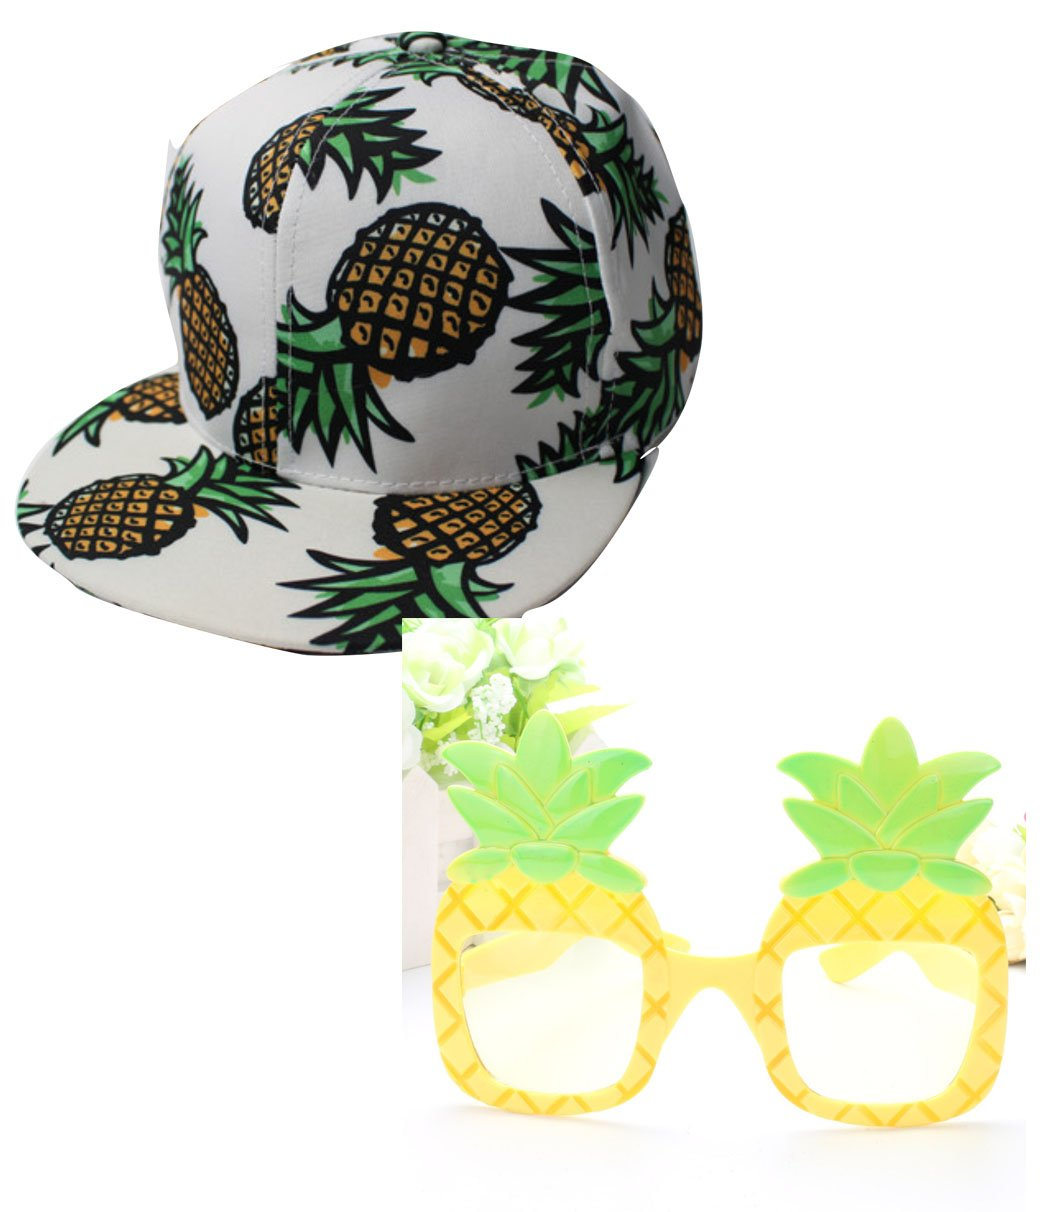 Set of 2 Pineapple Snapback Hat Adjustable Baseball Cap Hip-hop Hat Unisex & Funny Decorative Pineapple Beach Tropical Costumes Sunglasses Glitter